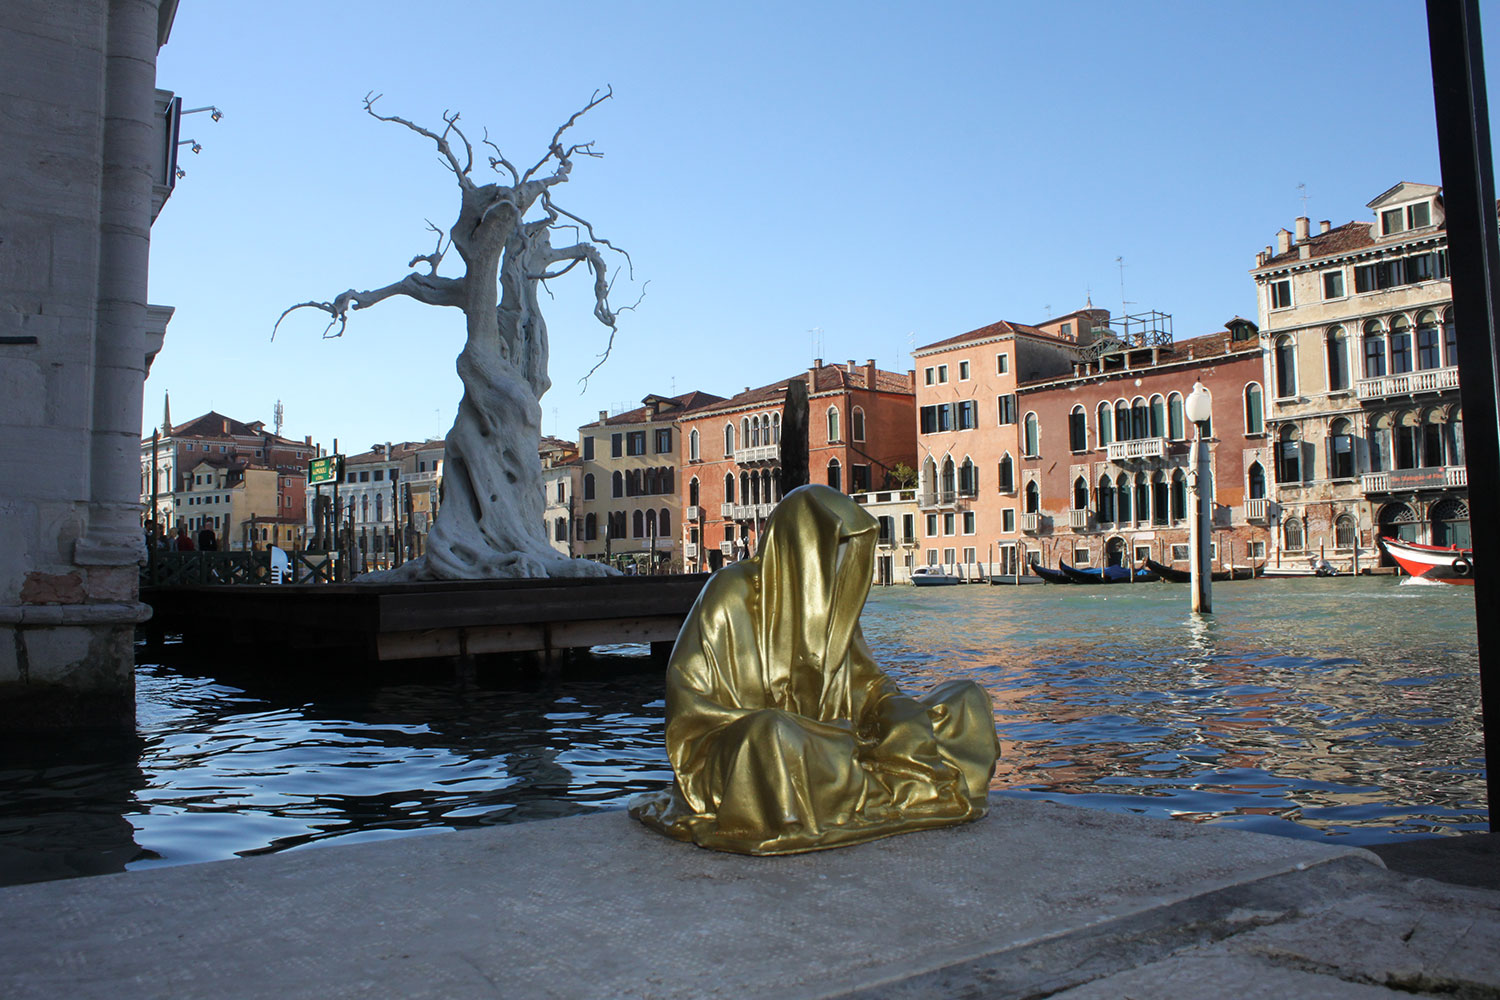 european-cultural-centre-venice-biennale-contemporary-art-show-sculpture-fine-arts-public-statue-guardians-of-time-manfred-kili-kielnhofer-9868